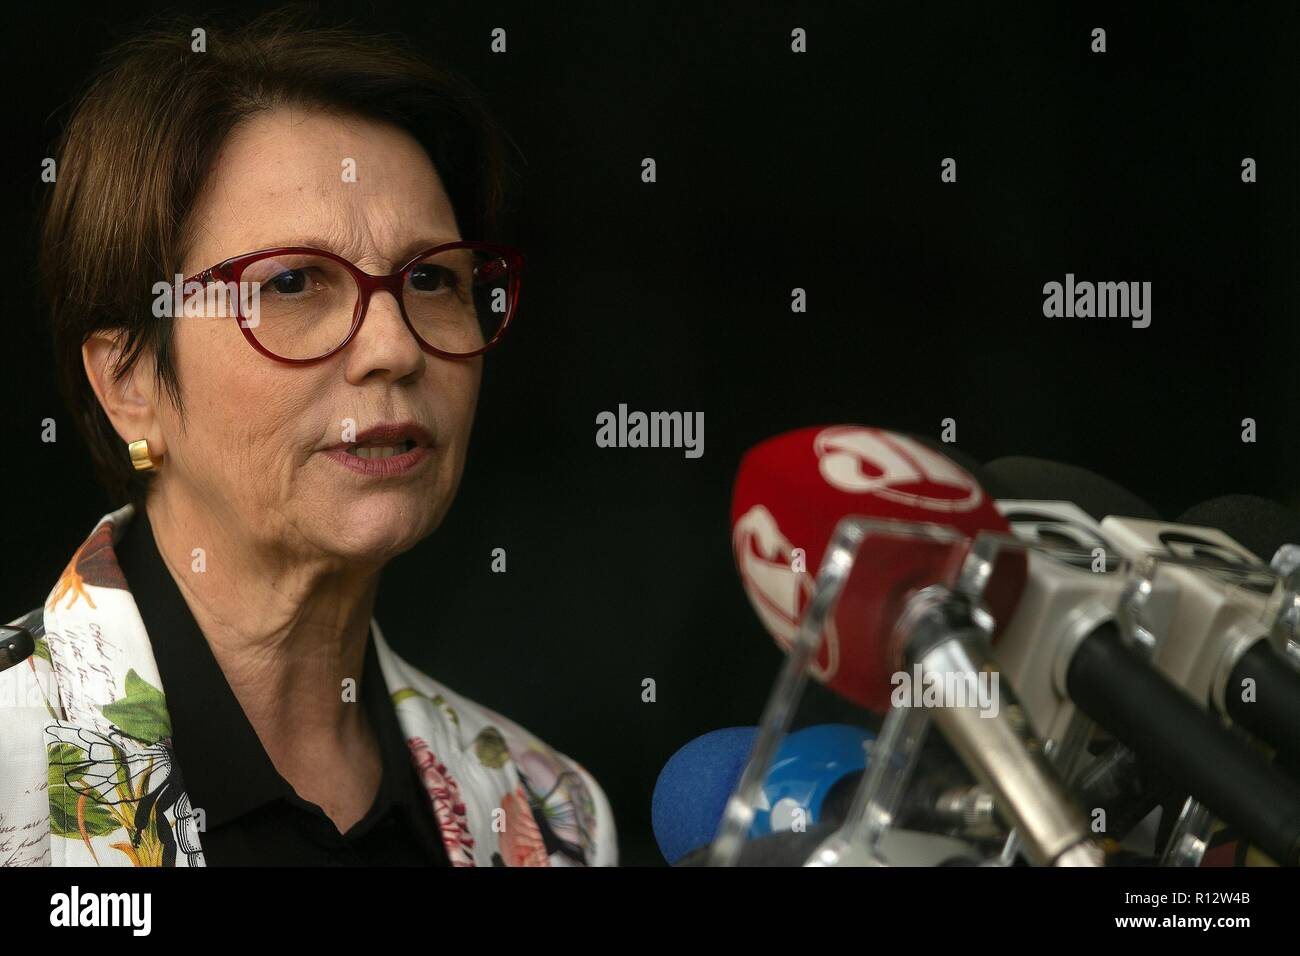 Brazilian future Agriculture Minister Tereza Cristina da Costa addresses the media, in Brasilia, Brazil, 08 November 2018. Da Costa admitted that the intention of Brazilian President-elect Jair Bolsonaro to transfer the country's embassy in Israel from Tel Aviv to Jerusalem worries the business sector that negotiates with the Arab world. EFE/ Joedson Alves - Stock Image